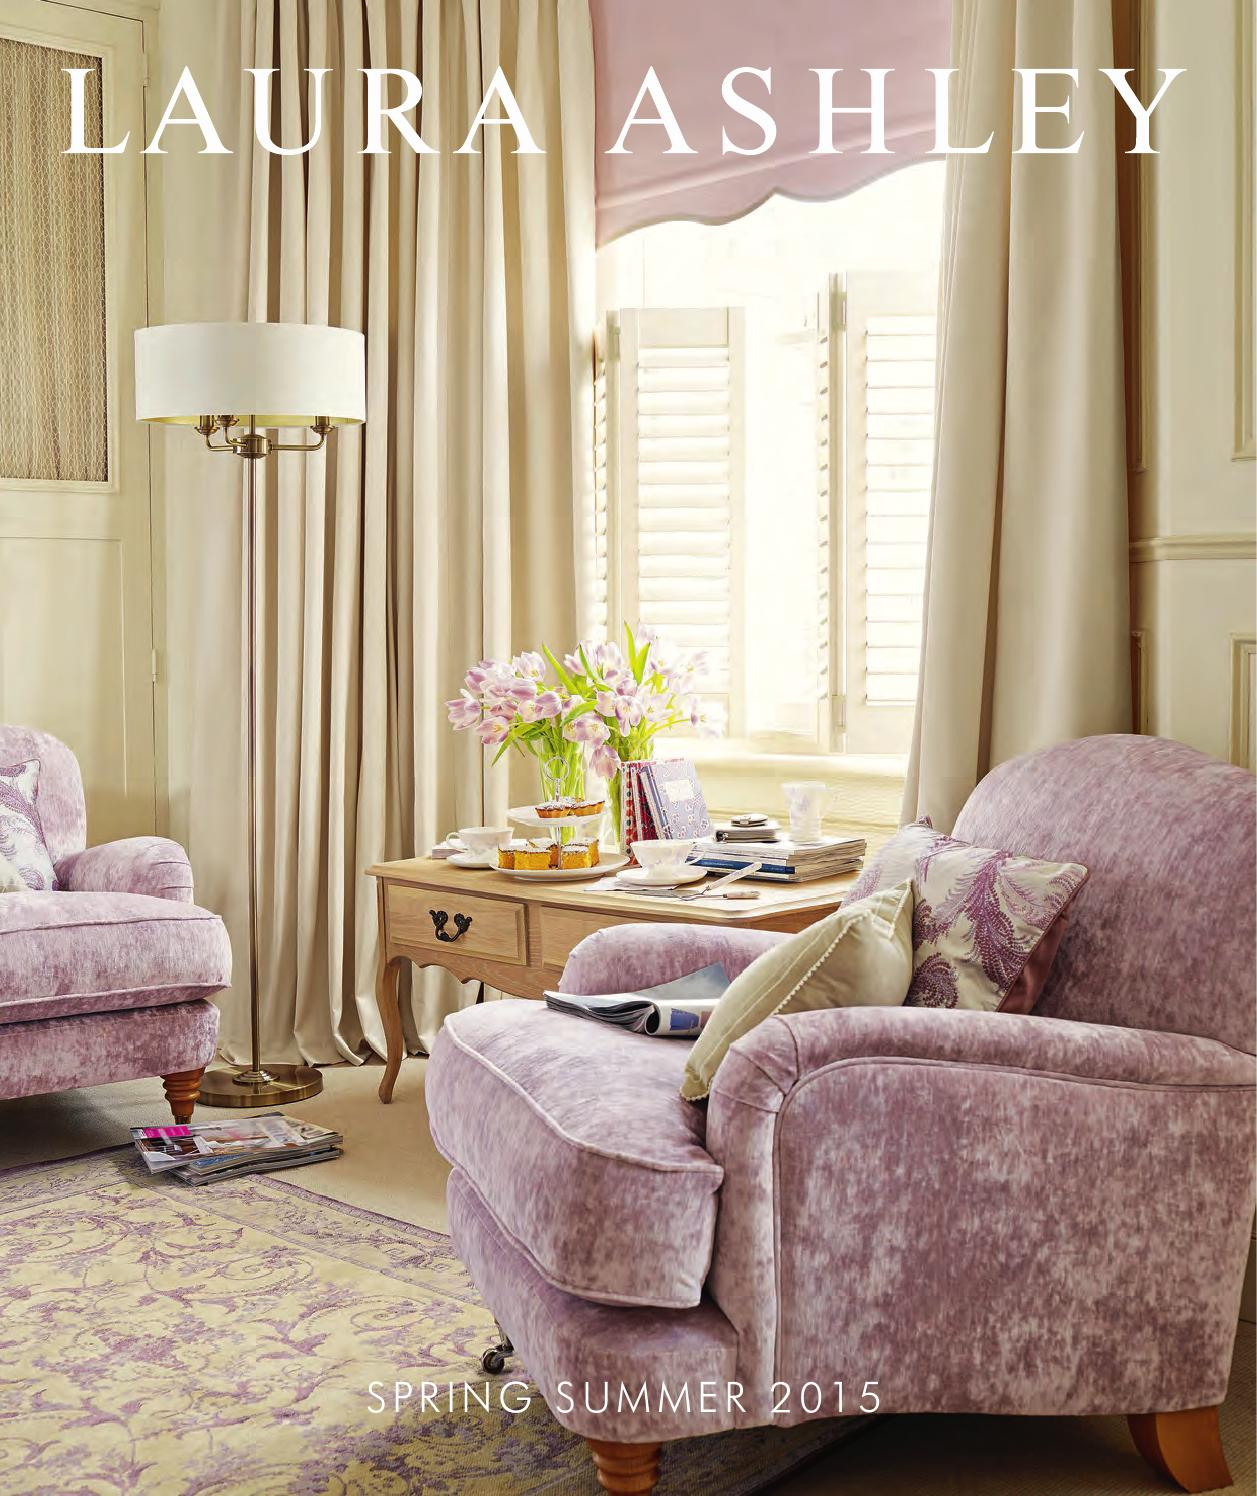 sofas laura ashley furniture chaise storage sofa beds spring summer 2015 catalogue by stanislav petkanov issuu